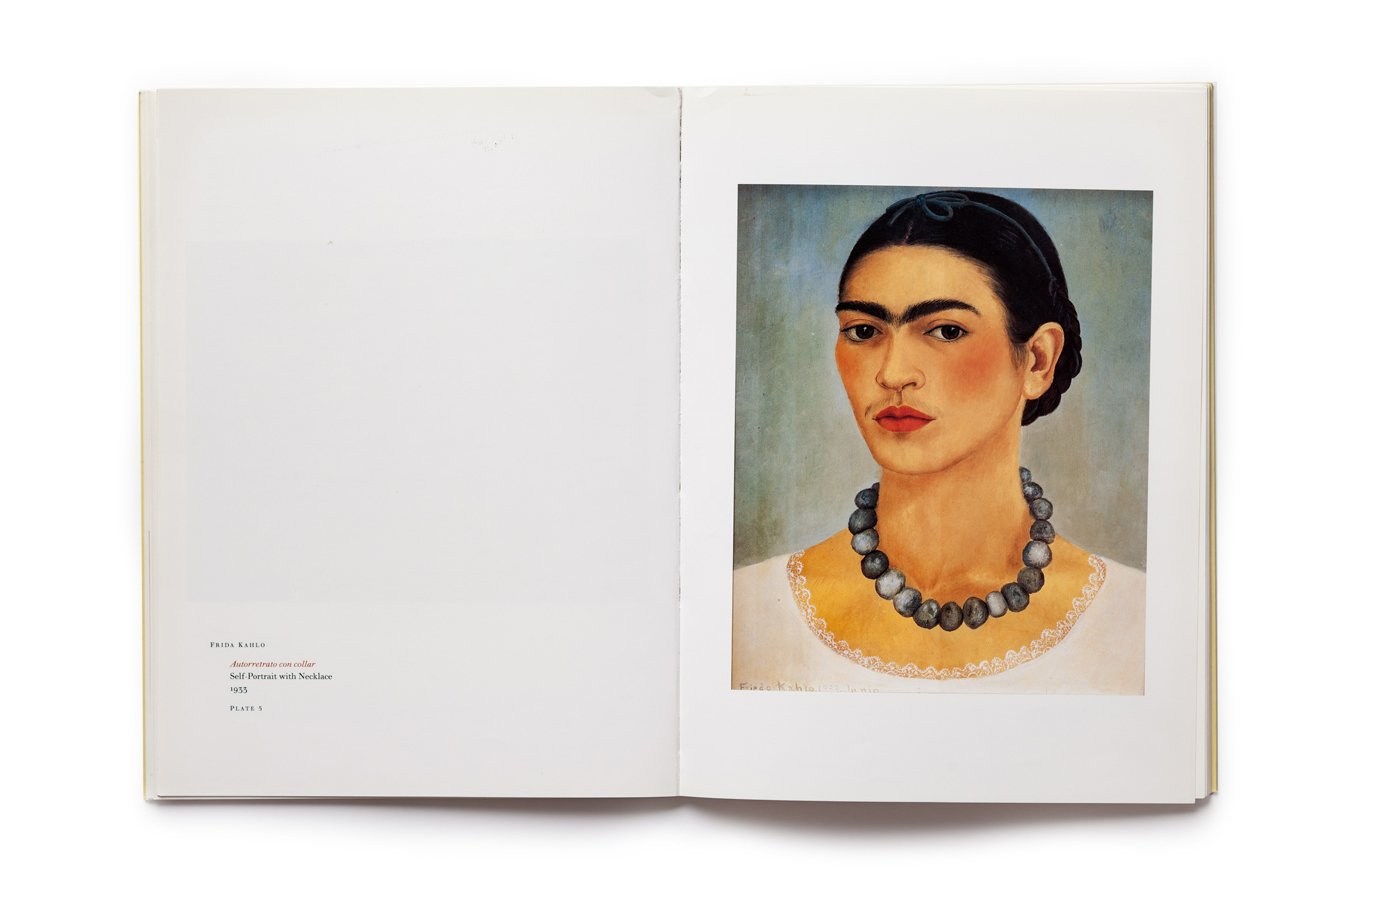 Frida Kahlo, Diego Rivera and Mexican Modernism, plate 5